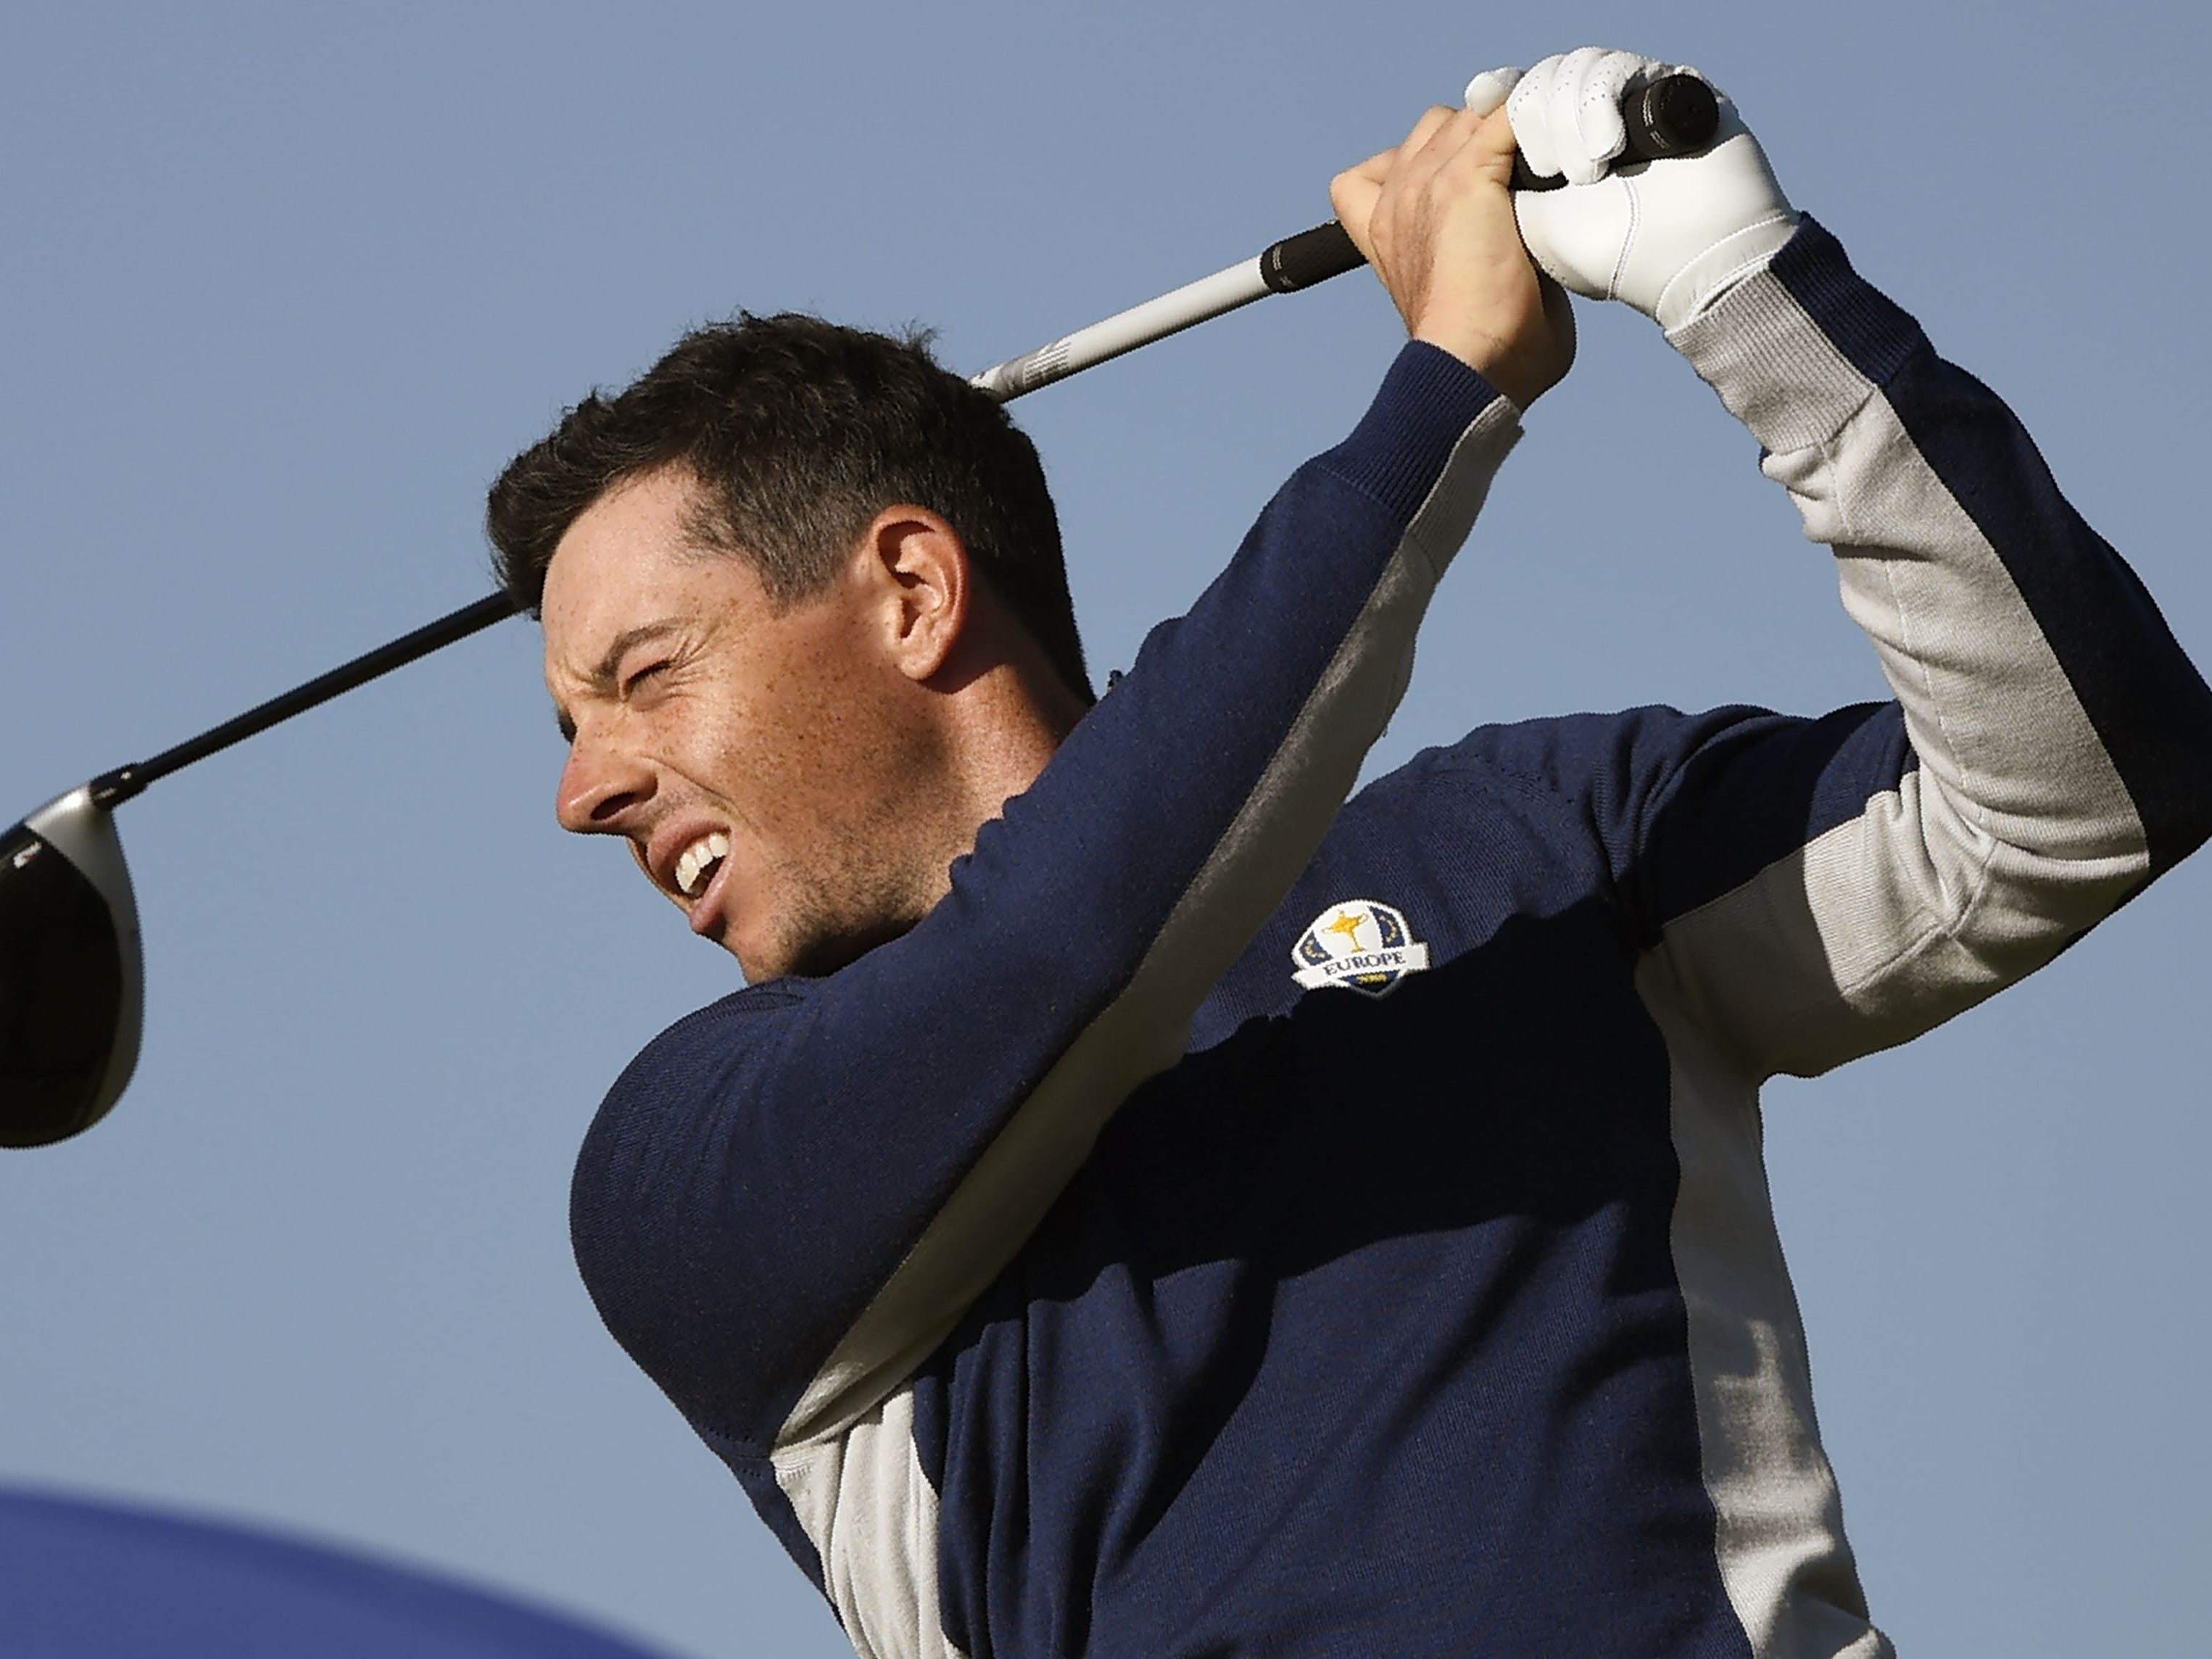 Rory McIlroy plays a tee shot during a practice session ahead of the 42nd Ryder Cup.